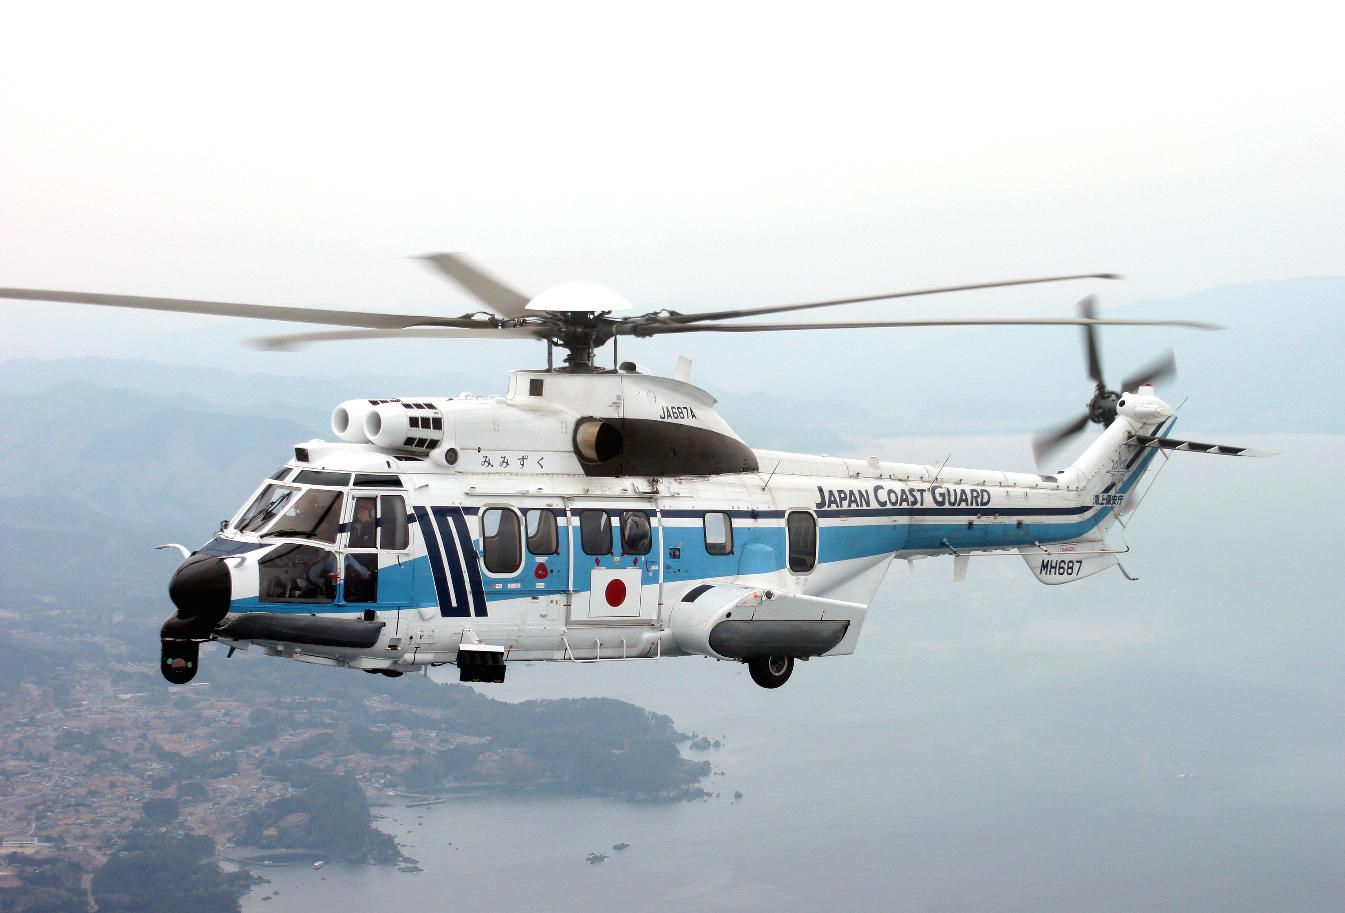 Farnbororough 2018: Japan Coast Guard signs up for H225 support